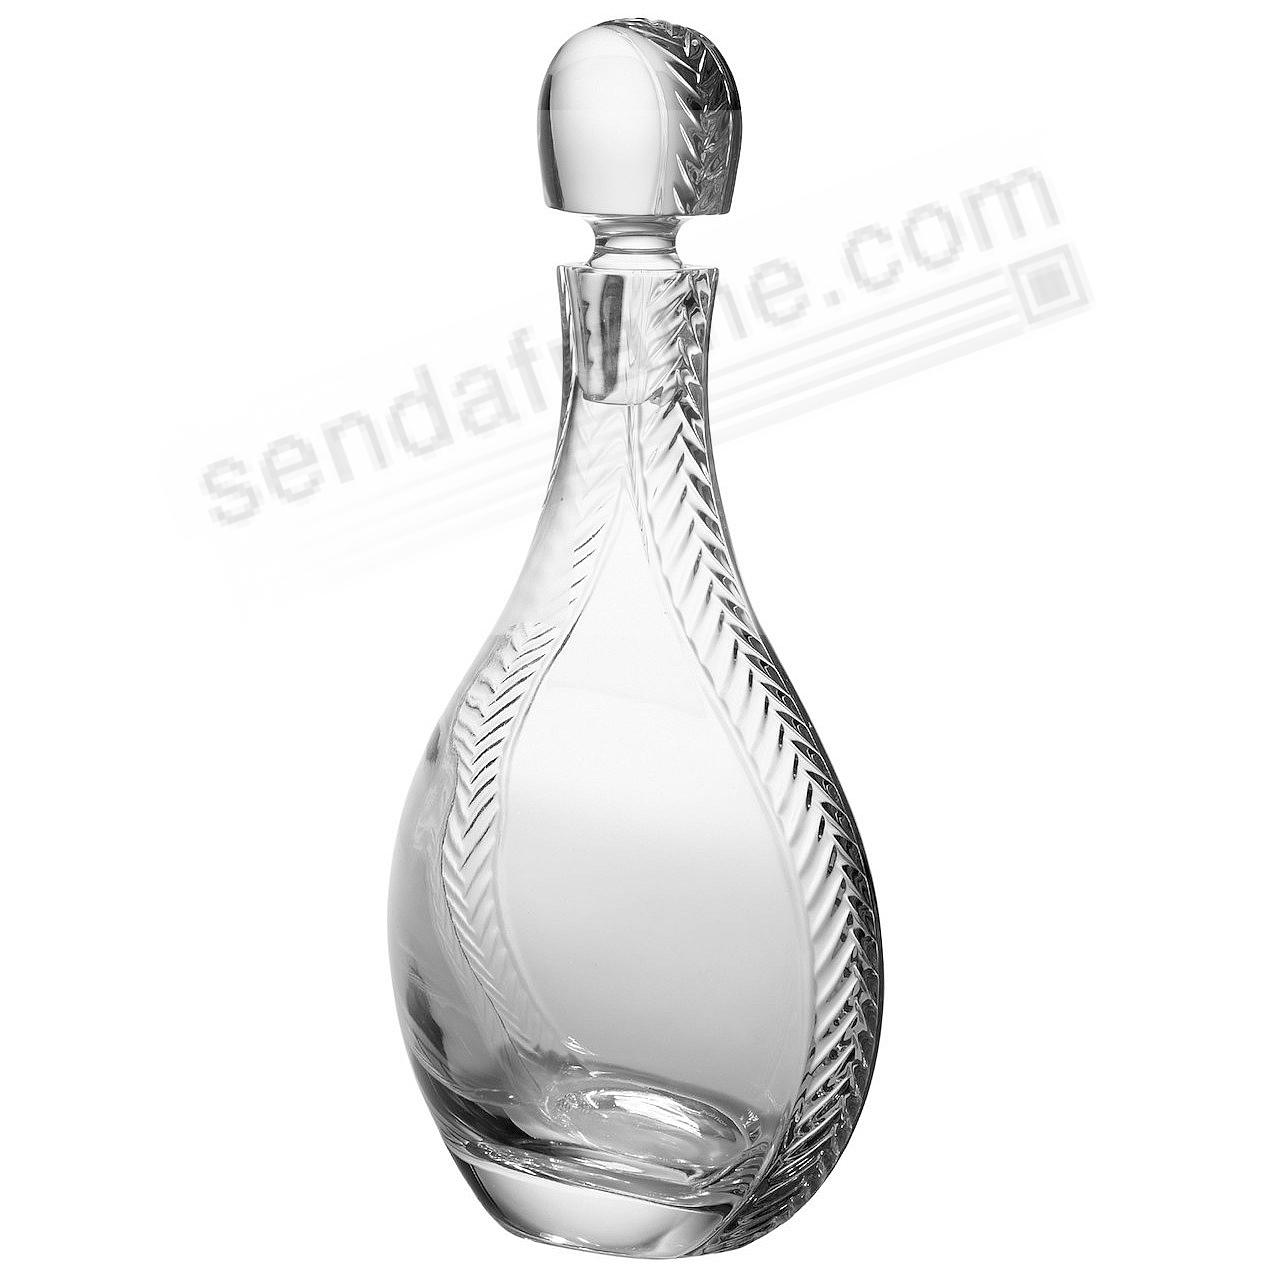 The Original BRAID CRYSTAL DECANTER by Nambe®